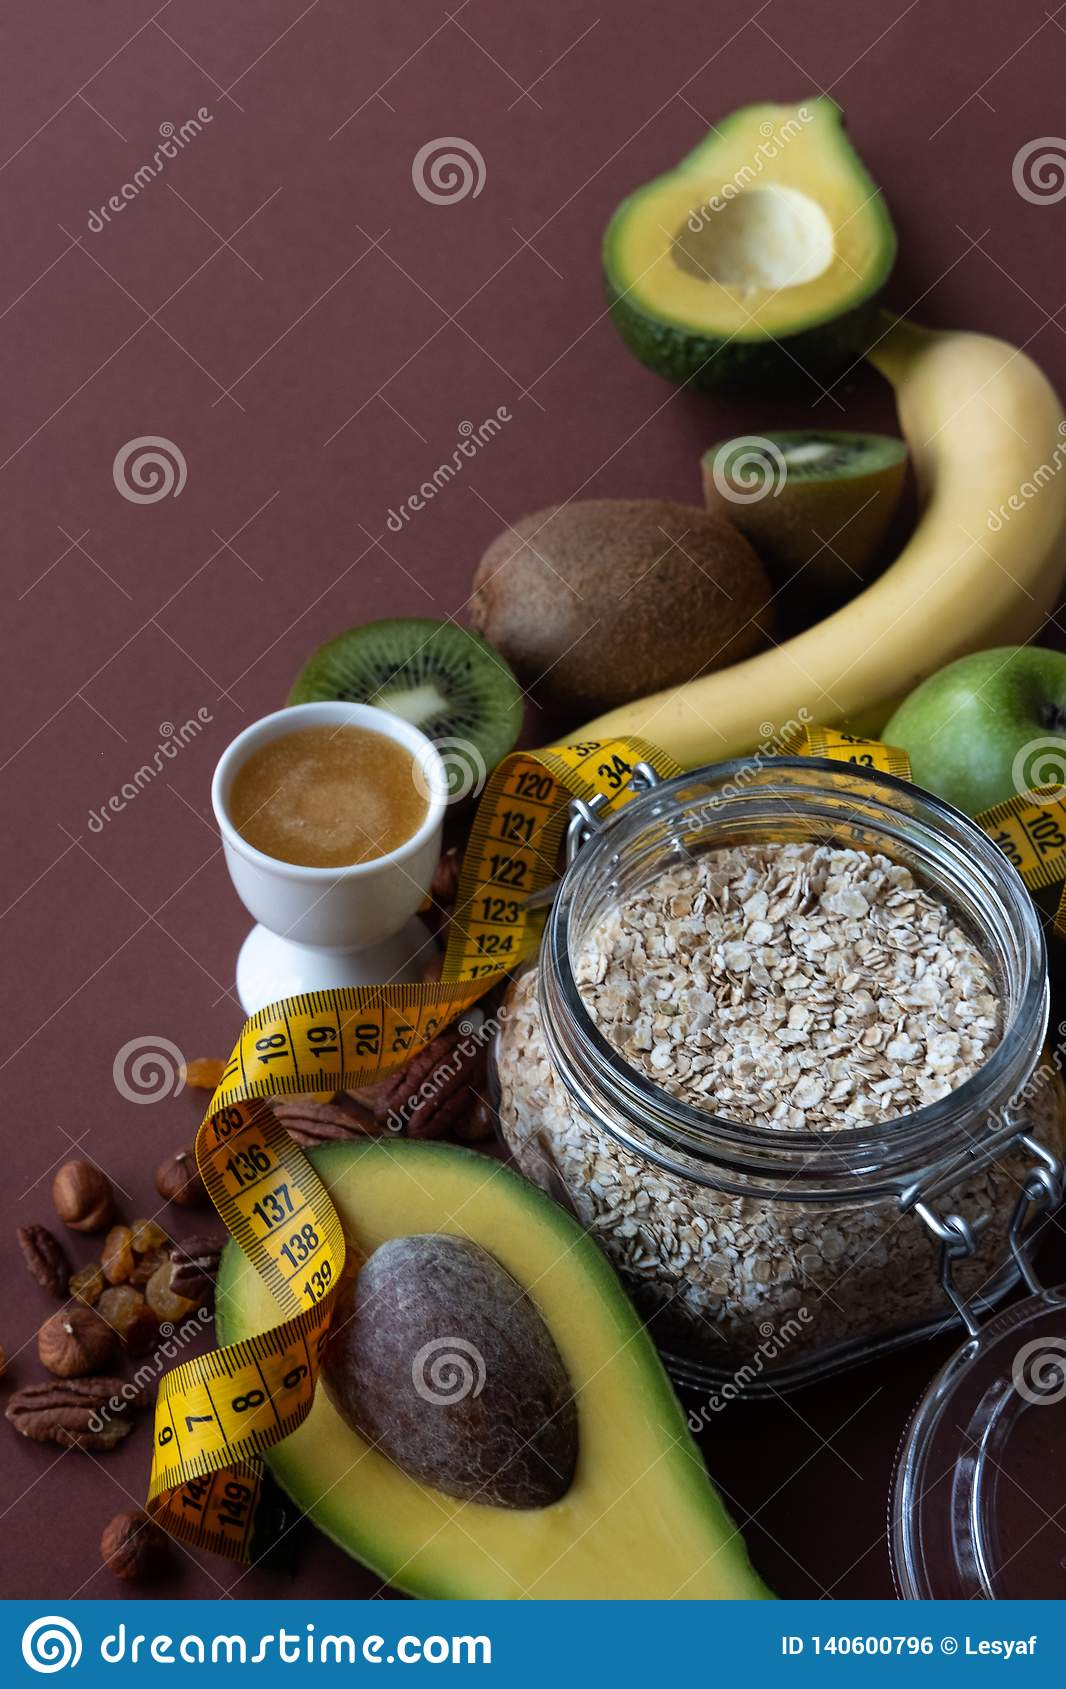 Sport and diet concept. Ingredients for healthy breakfast on brown background.